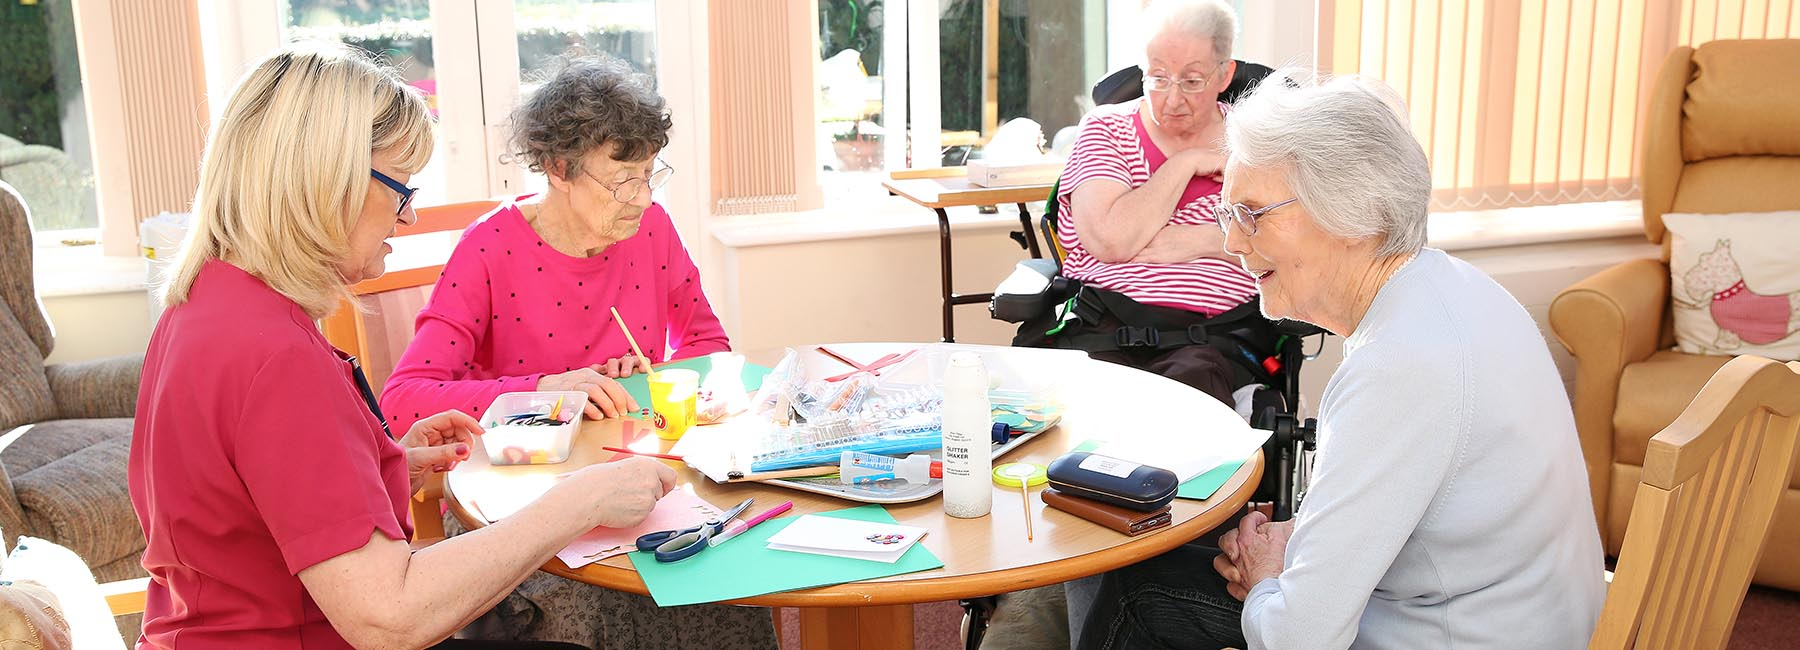 residents doing crafts